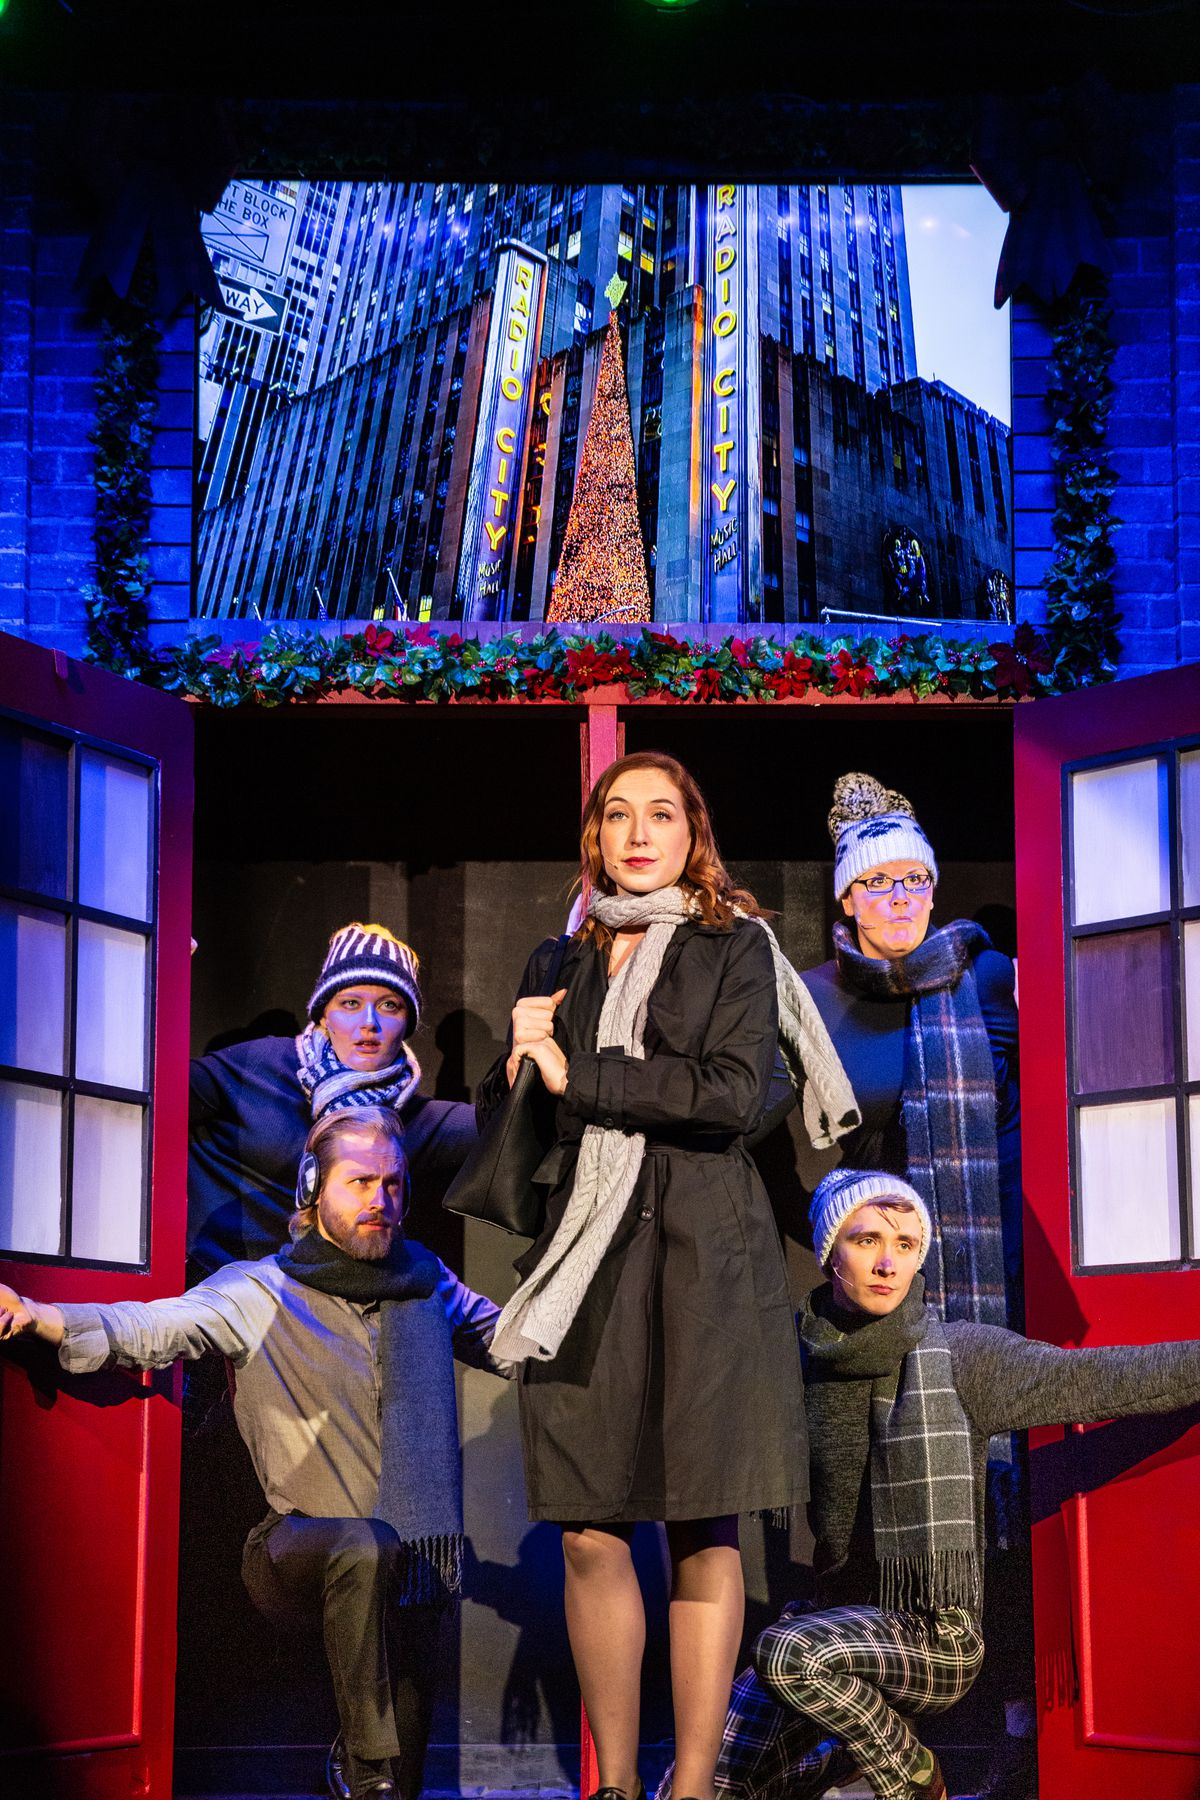 """Henrik Blix, Rob Grabowski, George Elrod, Bri Fitzpatrick, Jess DeBacco and Shelby Plummer in a scene from Second City's holiday revue, """"Deck the Hallmark: A Greeting Card ChannelOriginal."""""""